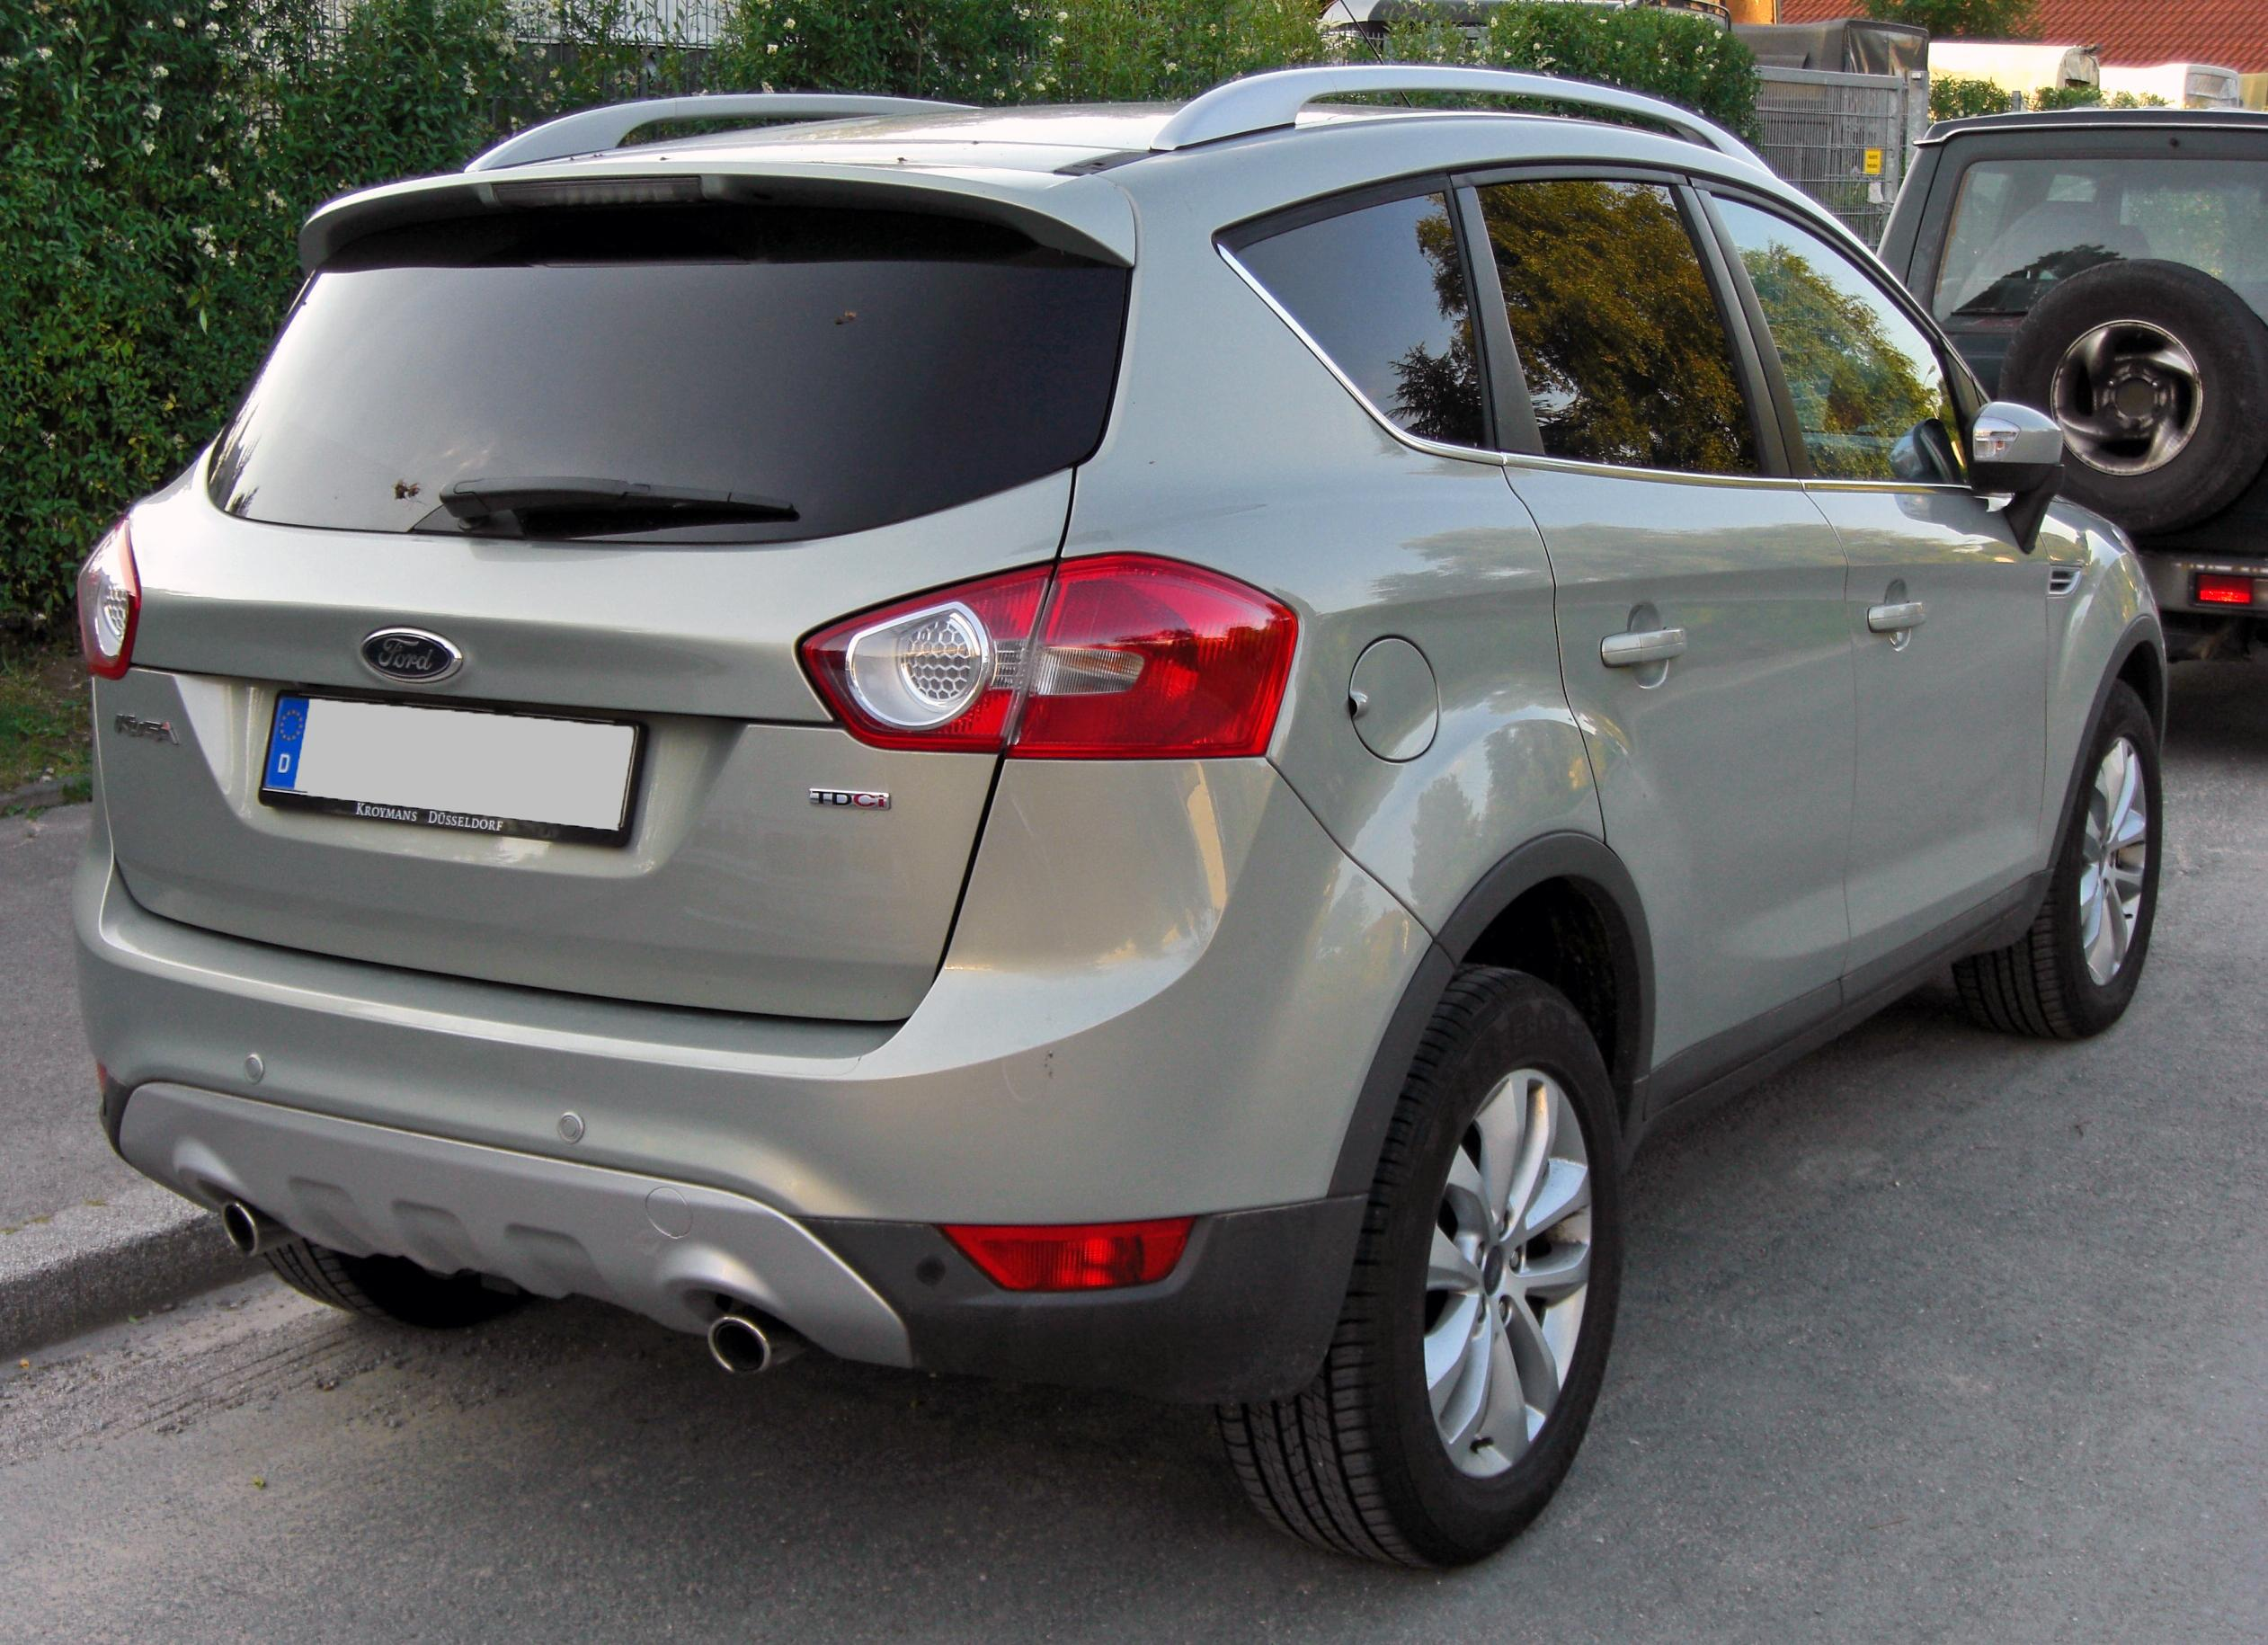 file ford kuga 20090612 rear jpg wikimedia commons. Black Bedroom Furniture Sets. Home Design Ideas